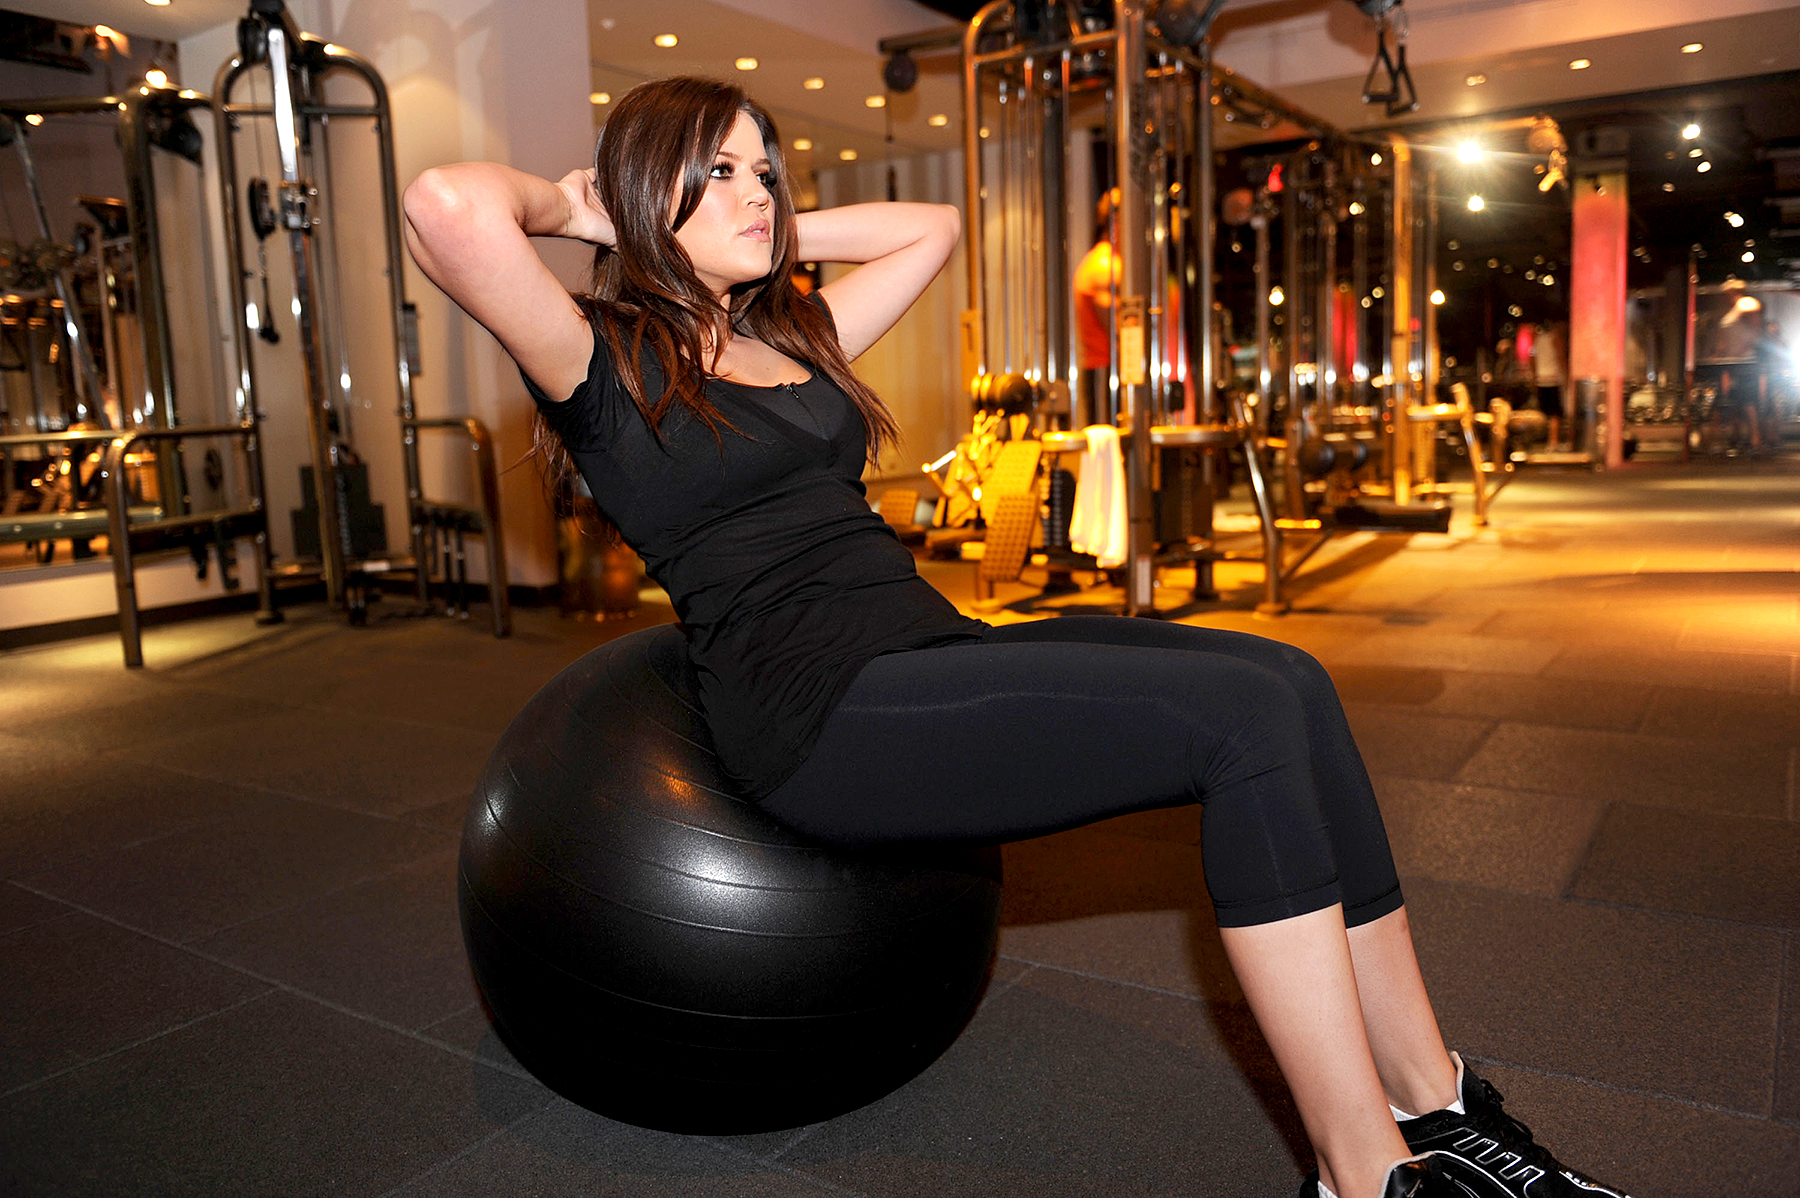 e2299a1f00 Best Celebrity Workout Tips 2018: How Stars Stay Fit